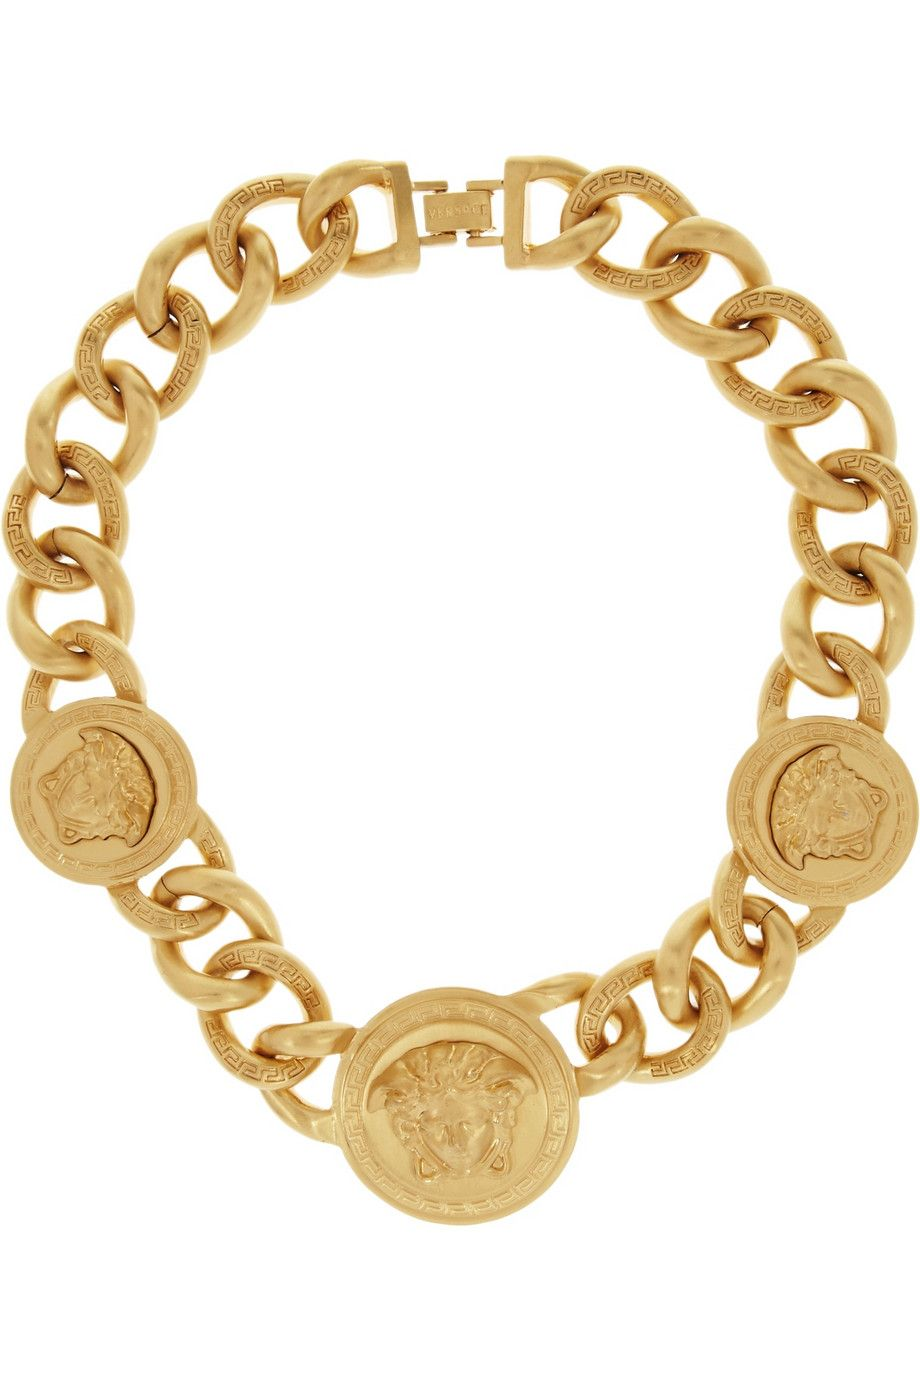 Versace goldplated necklace featuring medusa head coins